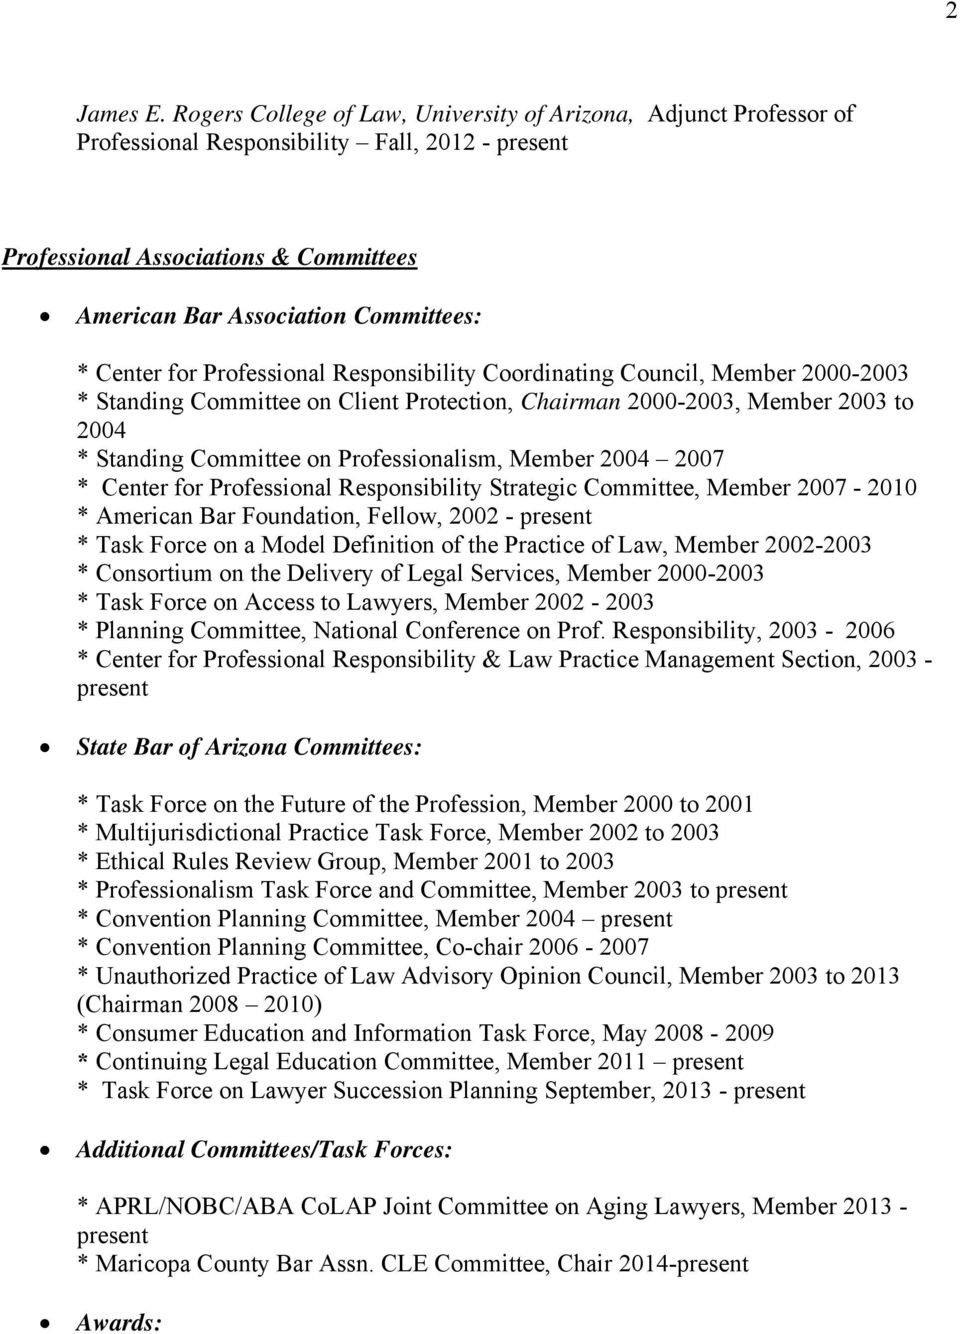 Center for Professional Responsibility Coordinating Council, Member 2000-2003 * Standing Committee on Client Protection, Chairman 2000-2003, Member 2003 to 2004 * Standing Committee on